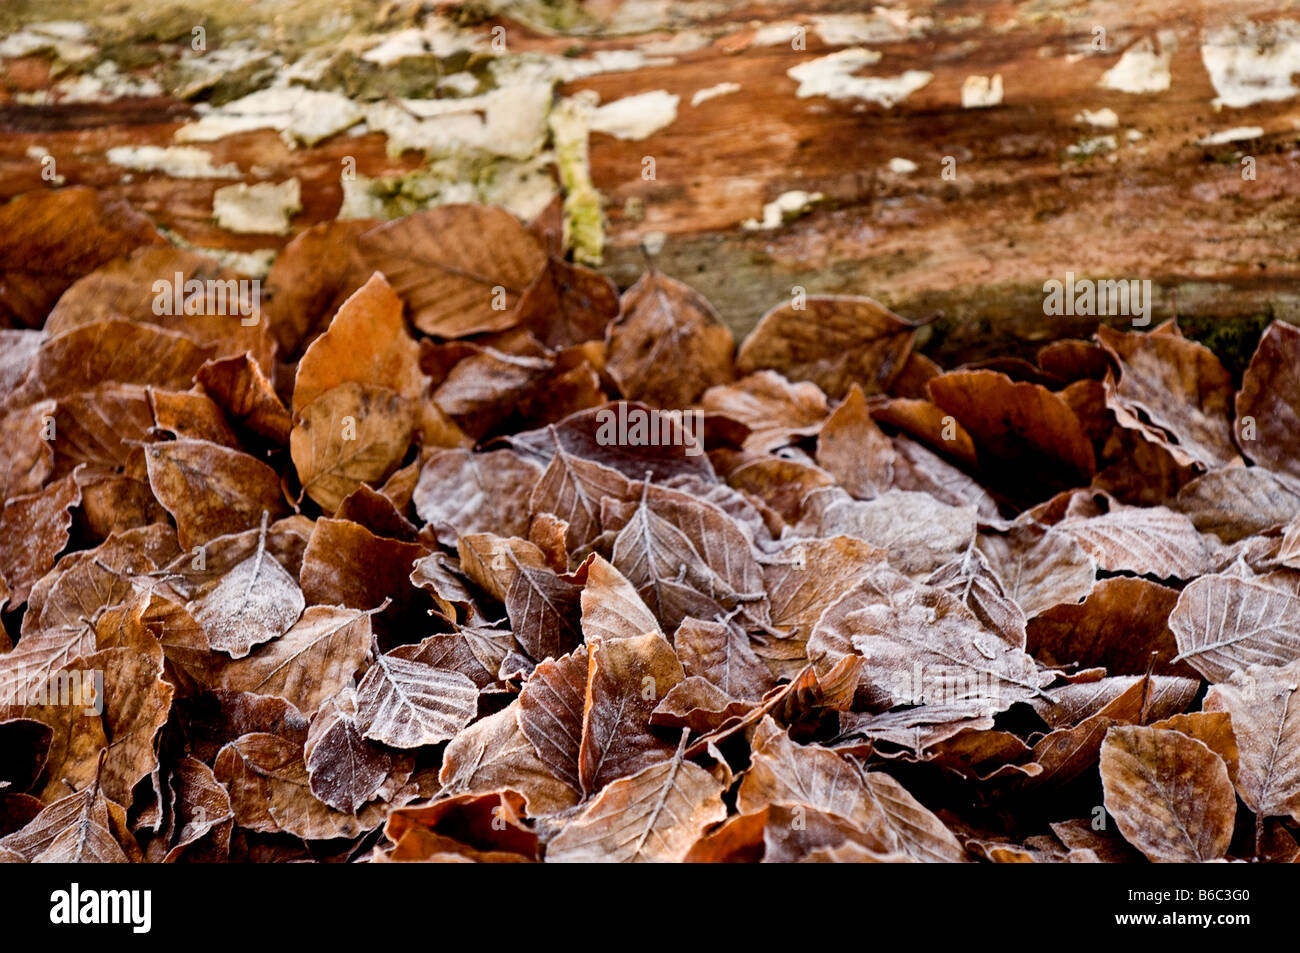 Copper Beech trees leaves on the ground in Thorndon Park in Essex. Stock Photo